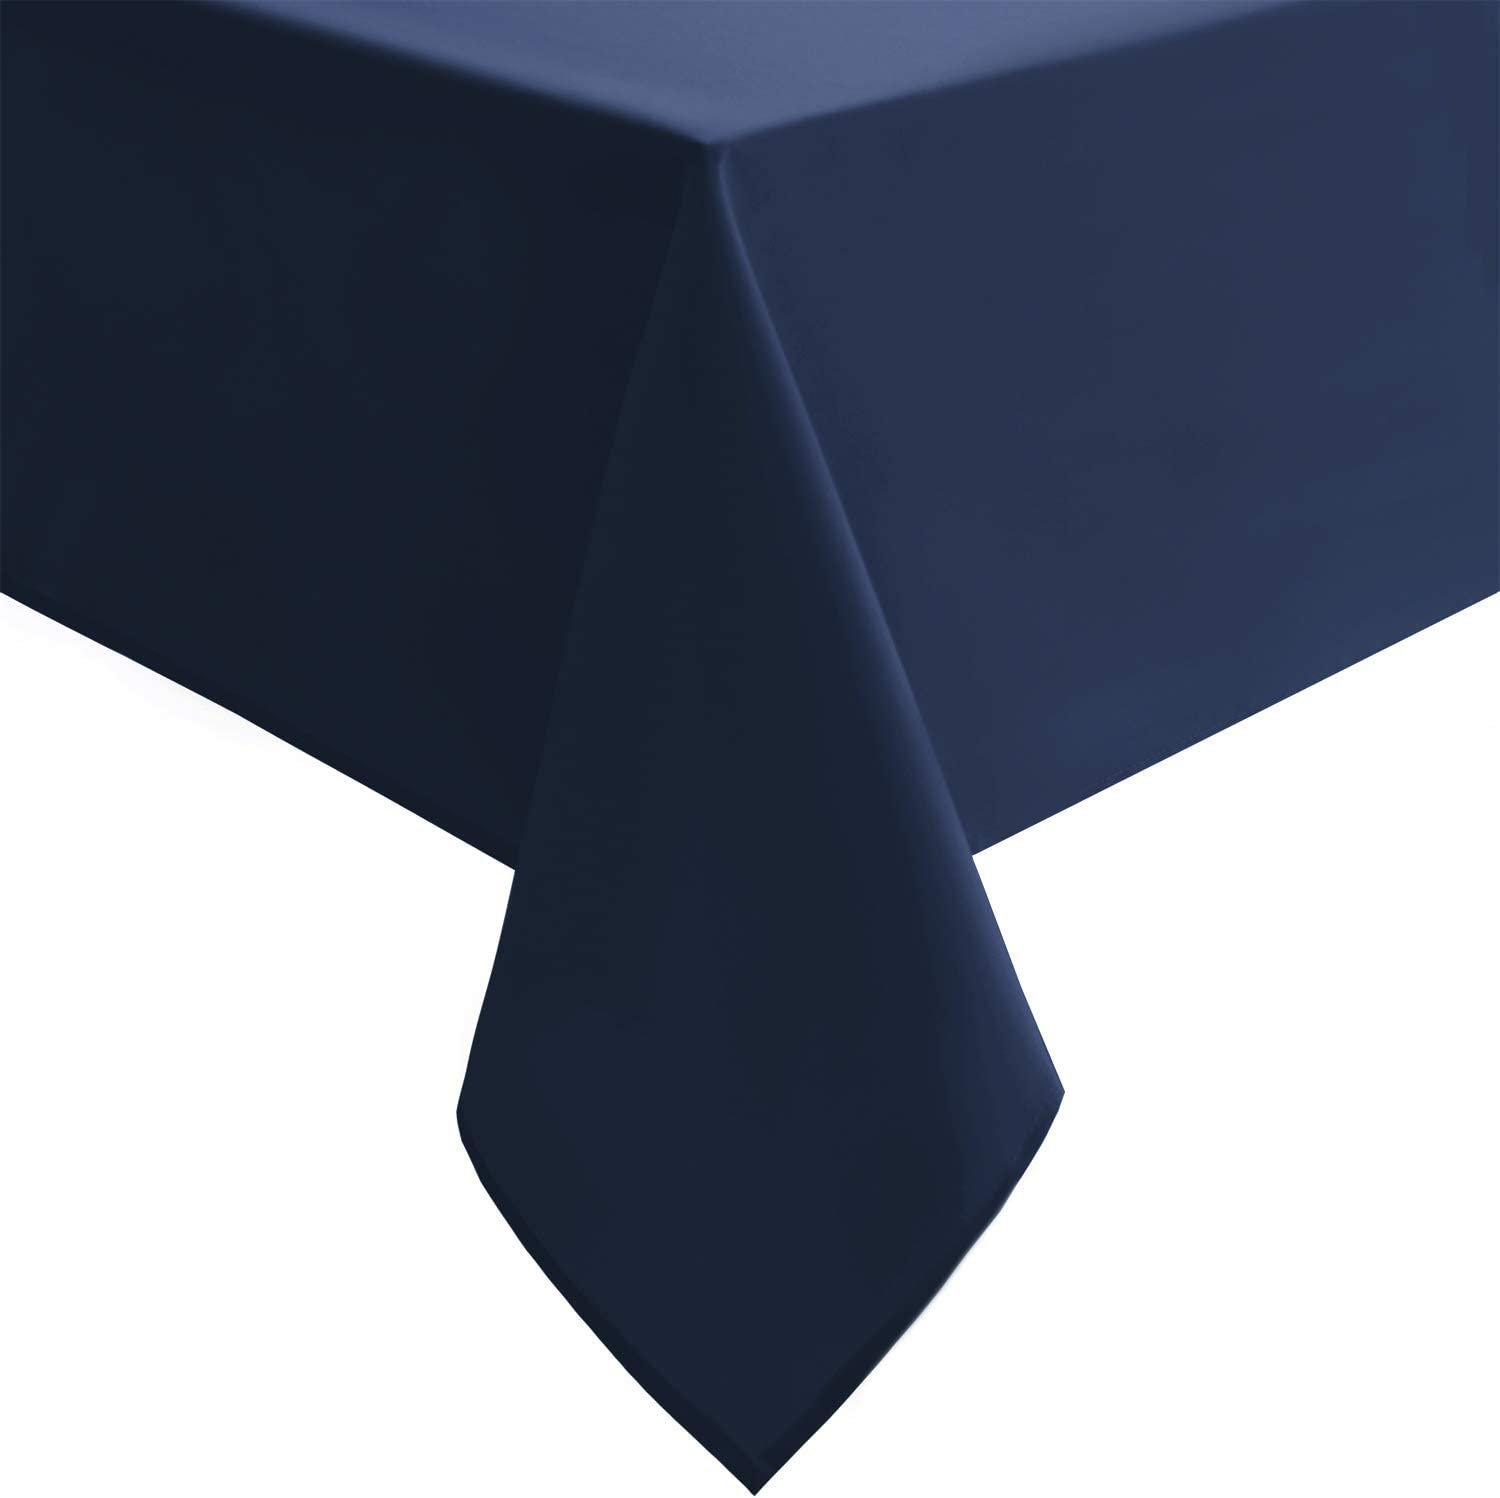 Hiasan Waterproof Tablecloth Rectangle - Washable Fabric Table Cloth for Dining Room Kitchen Birthday Party and Outdoor Use, Navy Blue, 54 x 80 Inch